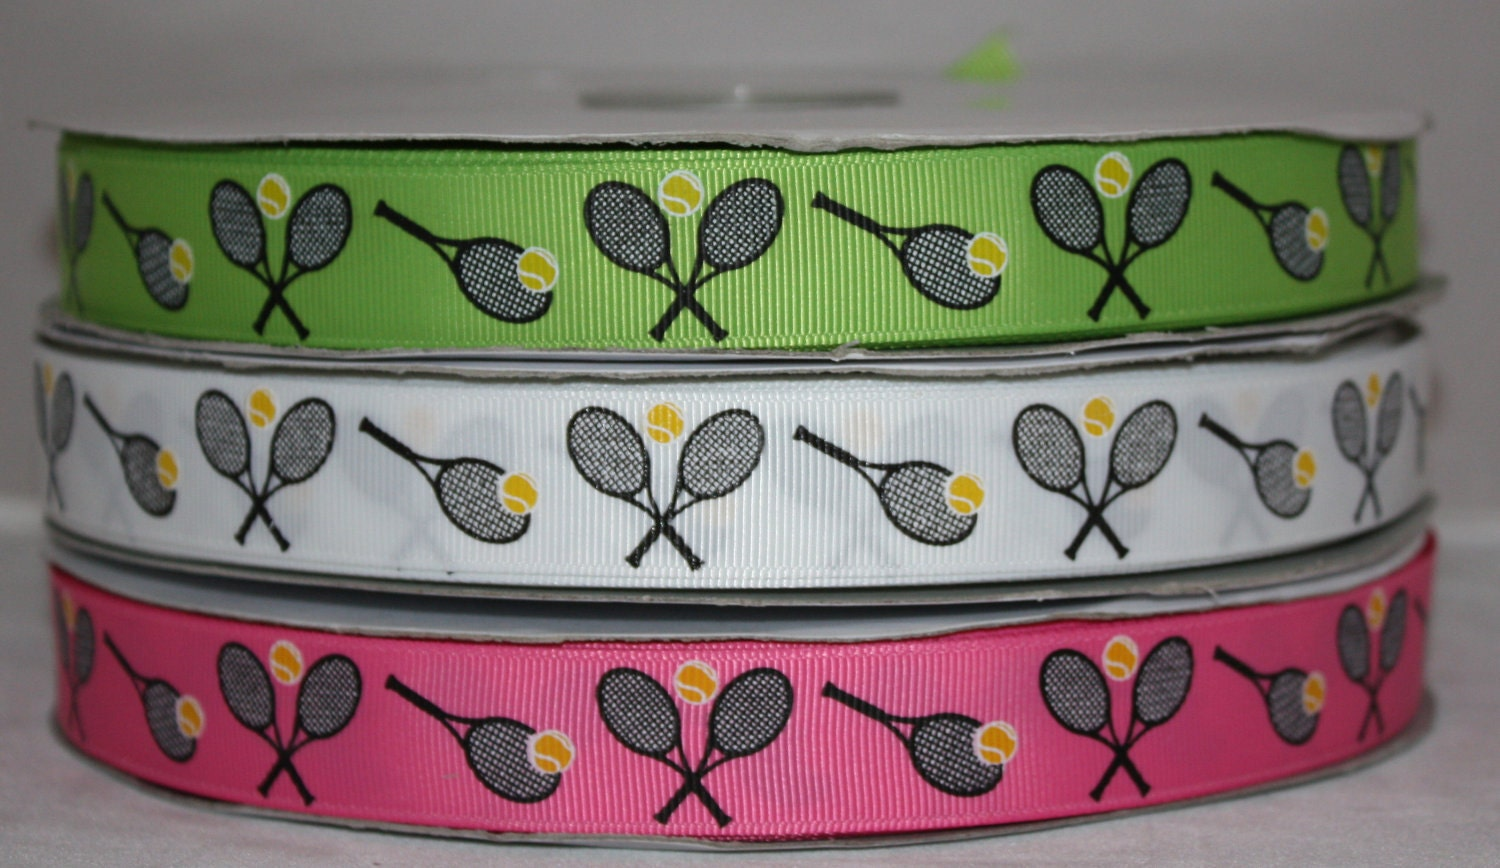 Tennis Sports Team Racket Ball Grosgrain Ribbon For Hairbows 3